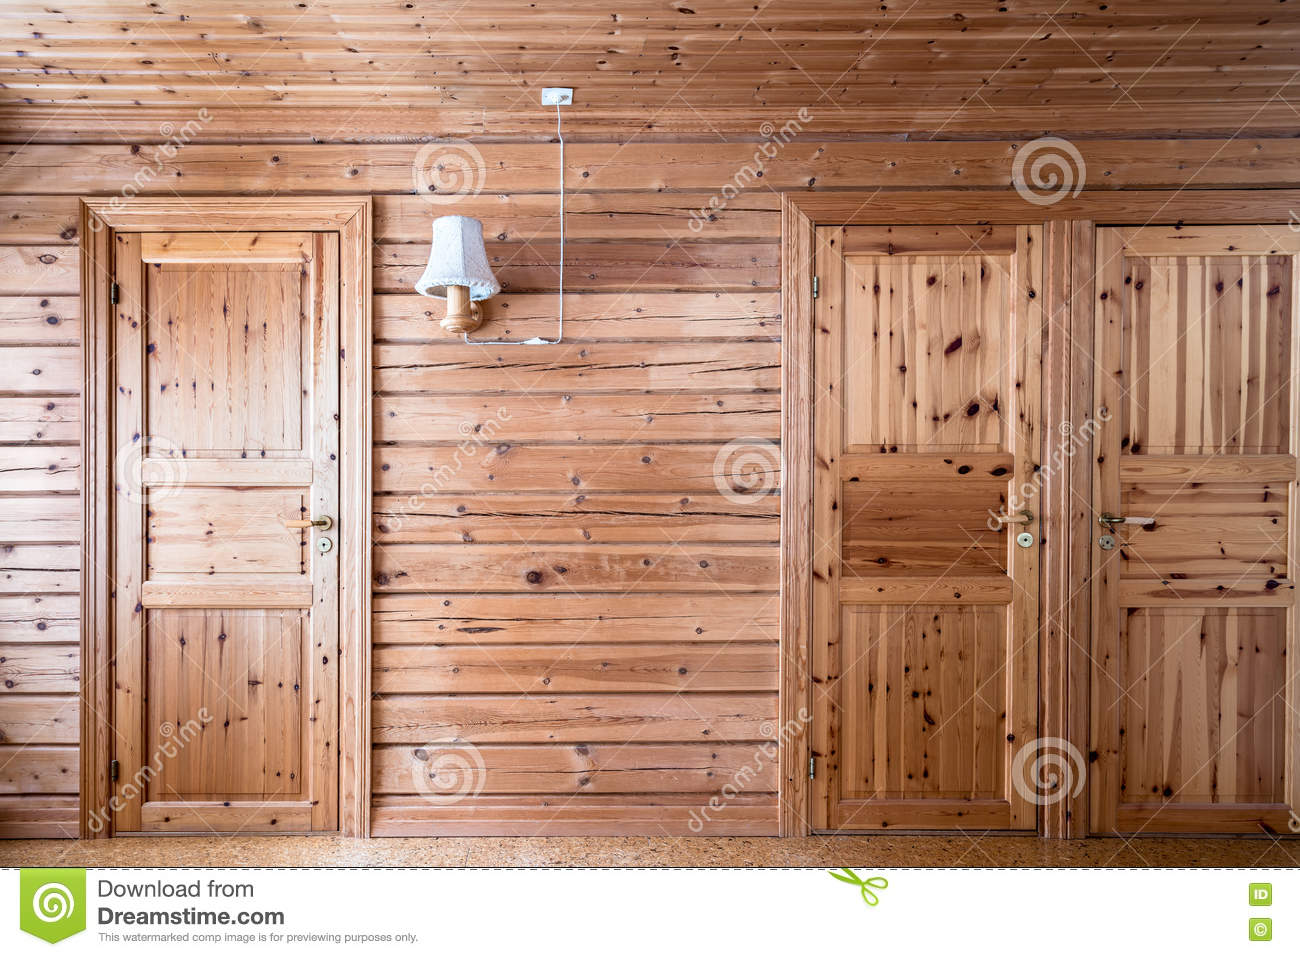 Pinewood Interior Wall And Doors, Cabin Cottage.